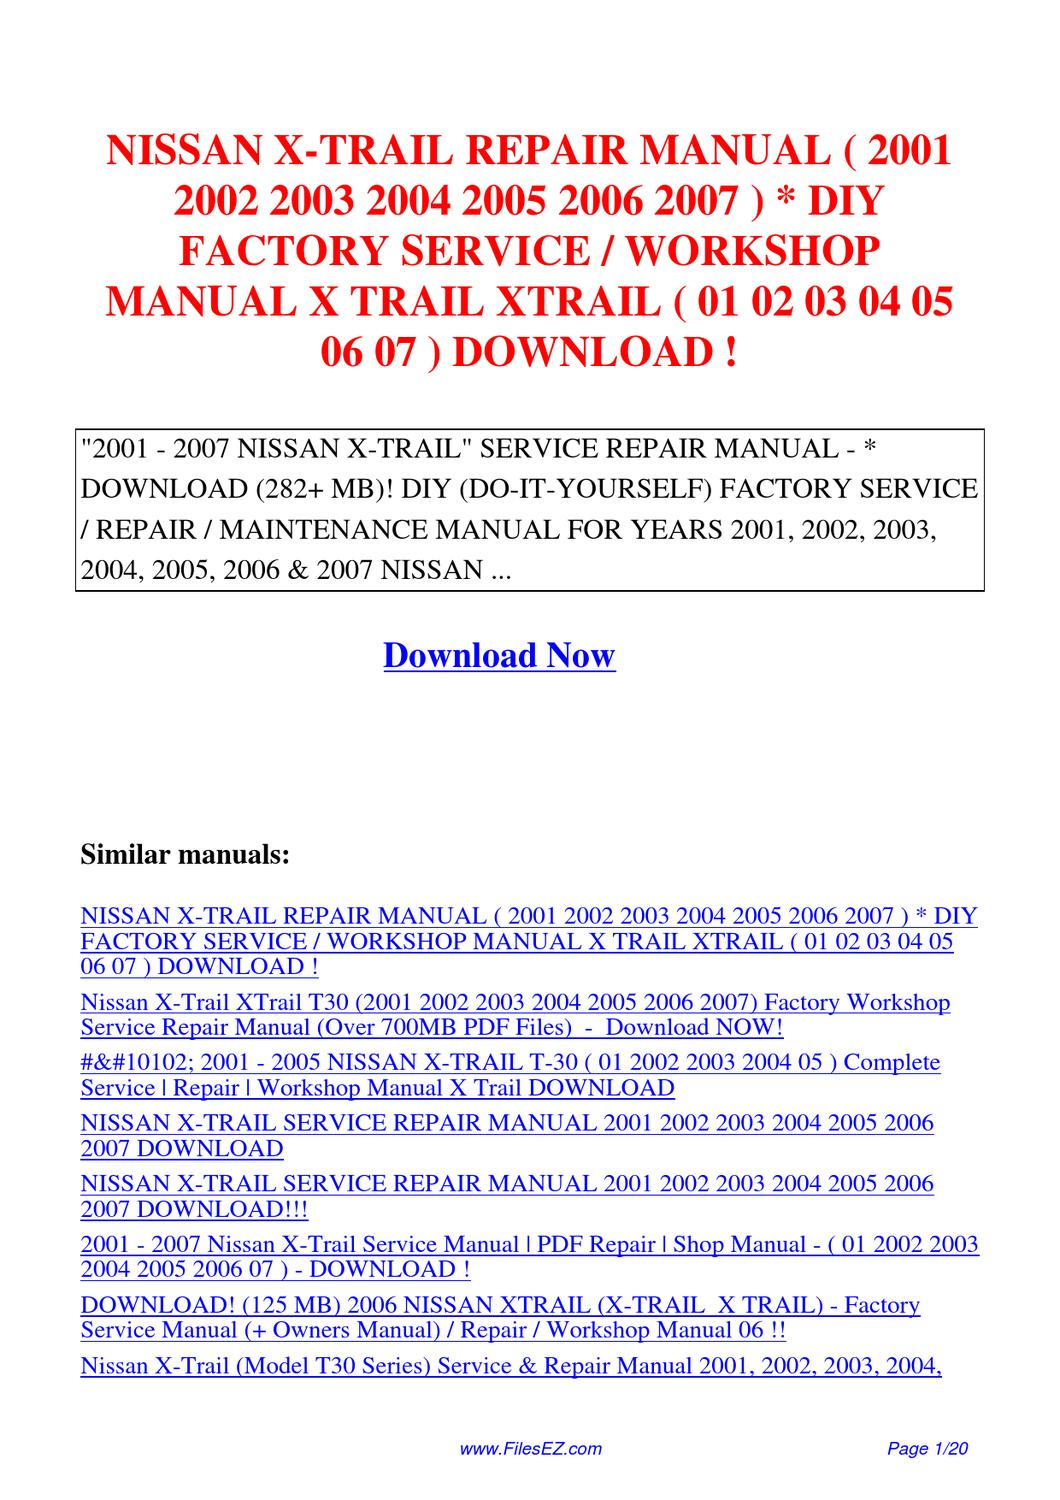 NISSAN_X-TRAIL_REPAIR_MANUAL_2001_2002_2003_2004_2005_2006_2007_DIY_FACTORY_SERVICE_WORKSHOP  by Jingle Wong - issuu